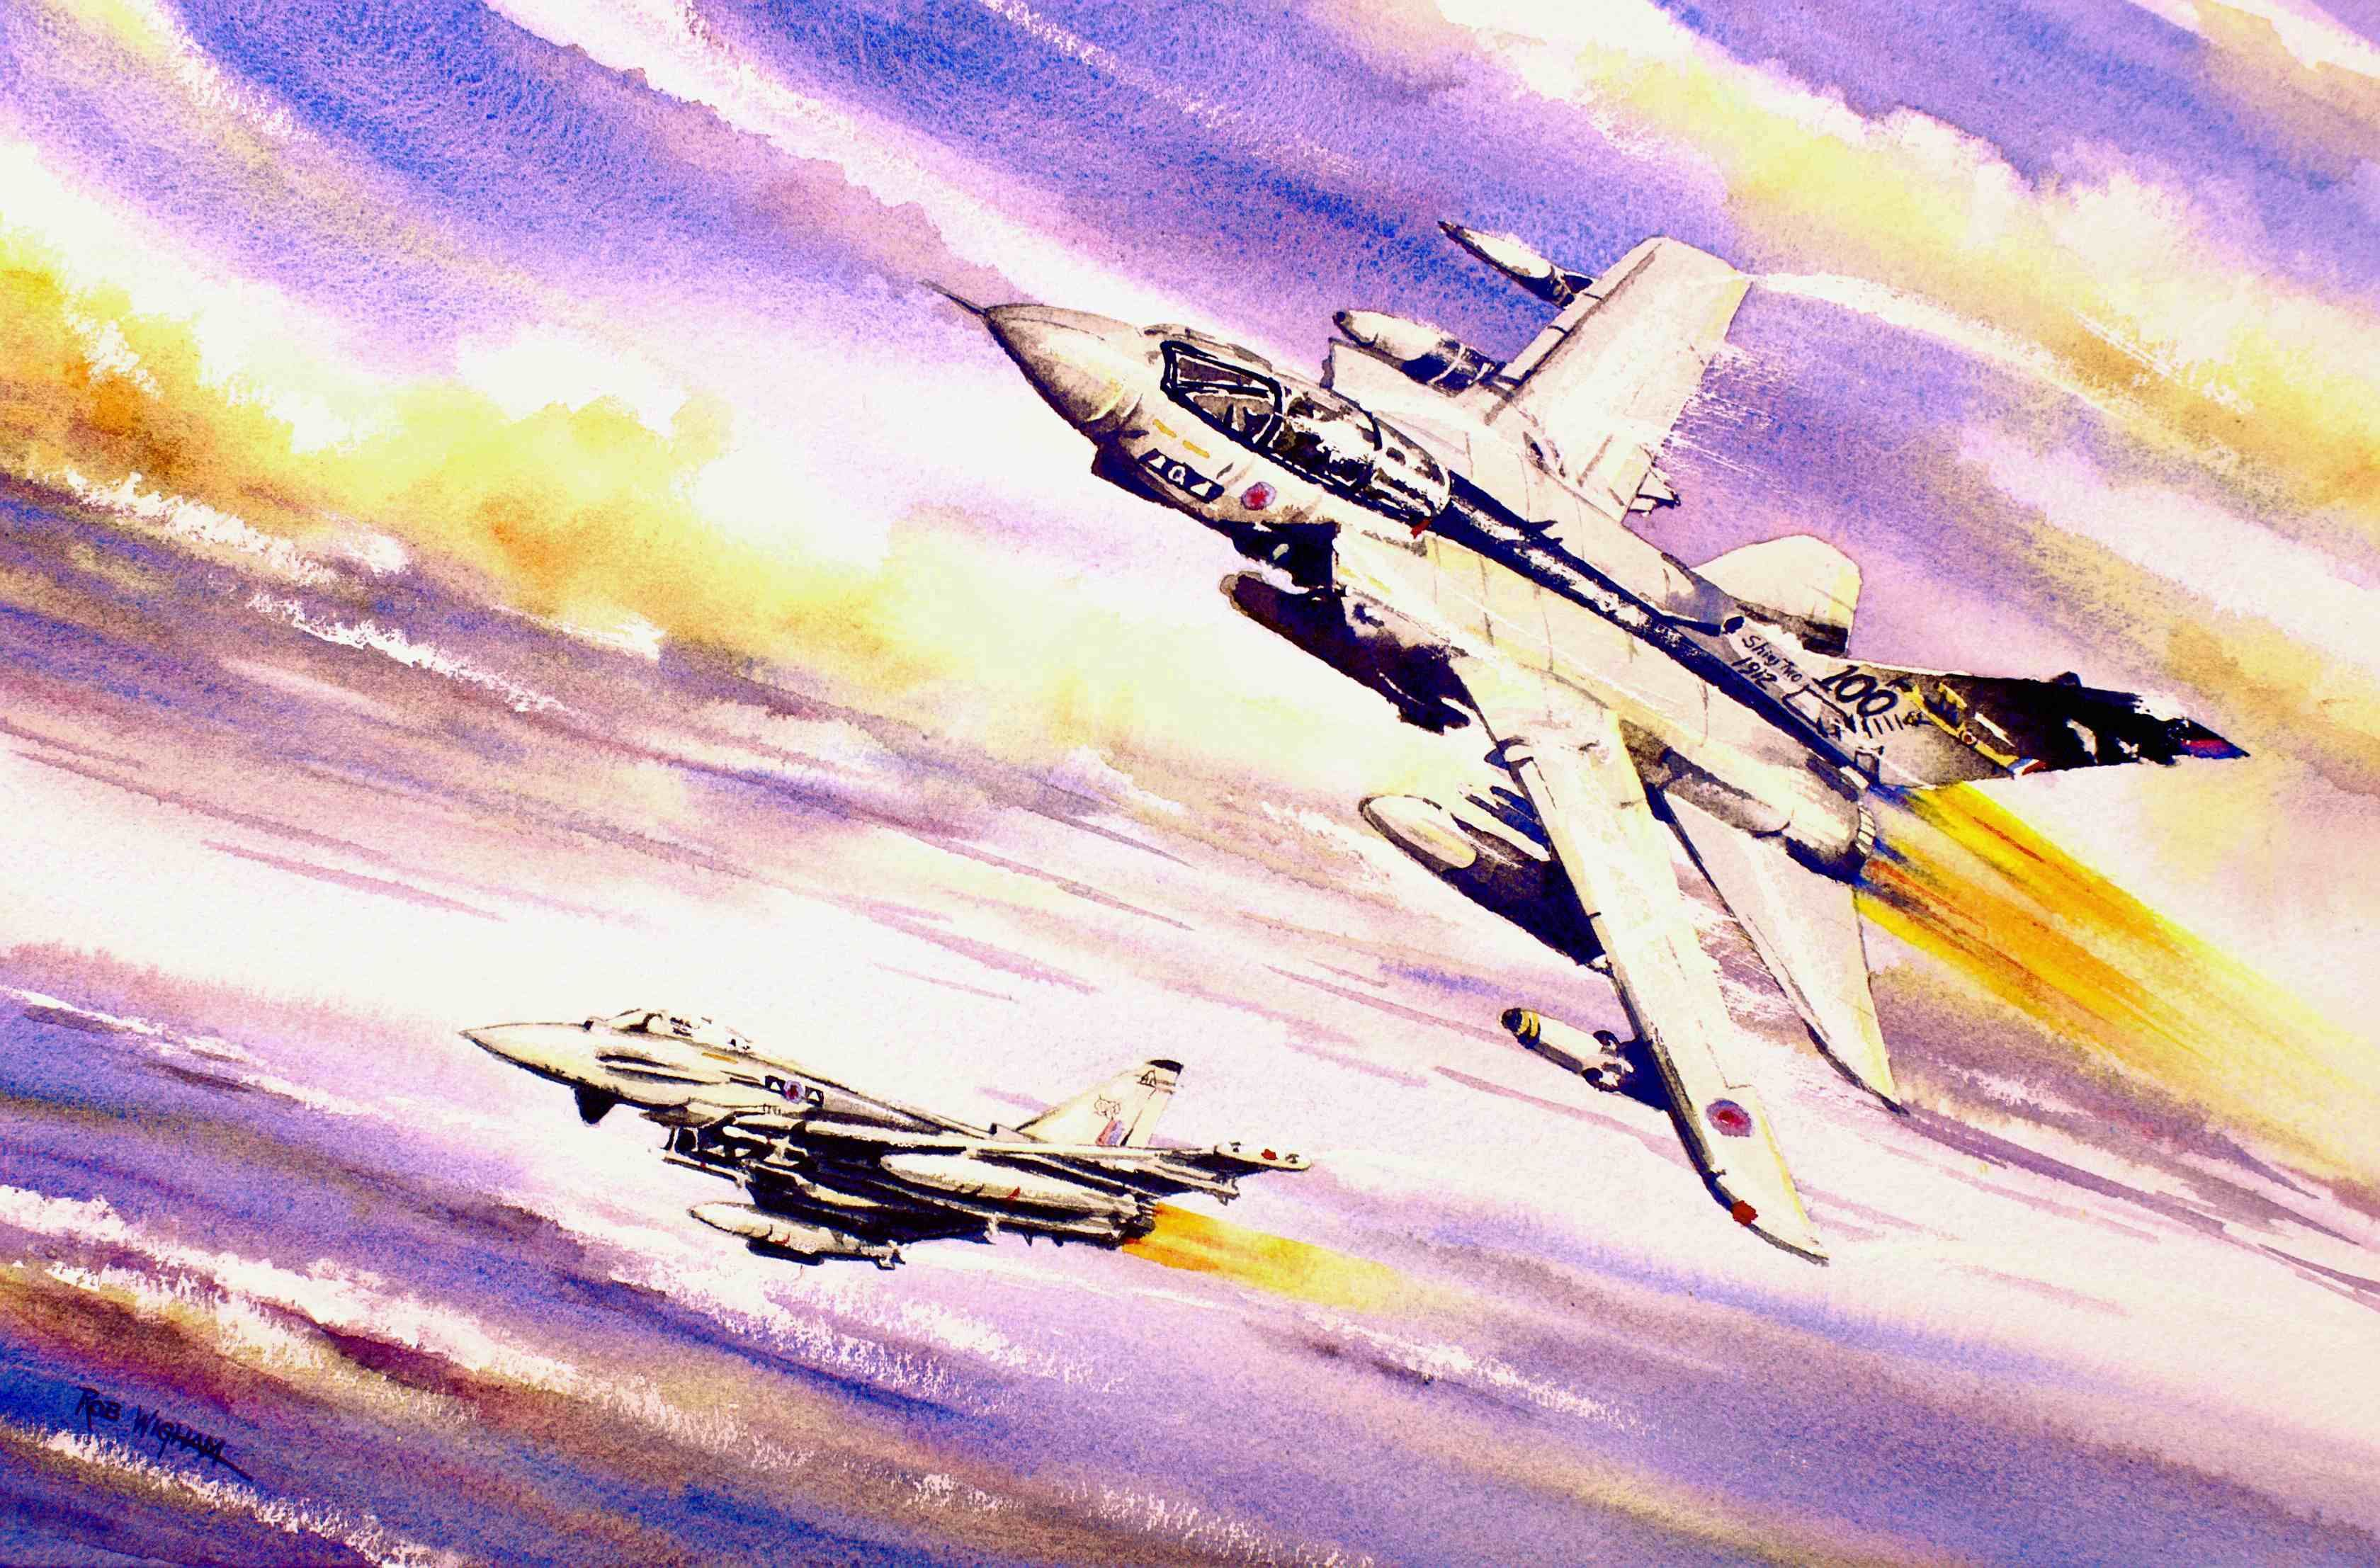 Shiny Twos Watercolour 50 X 32 Cm A Tornado Gr4 And A Typhoon